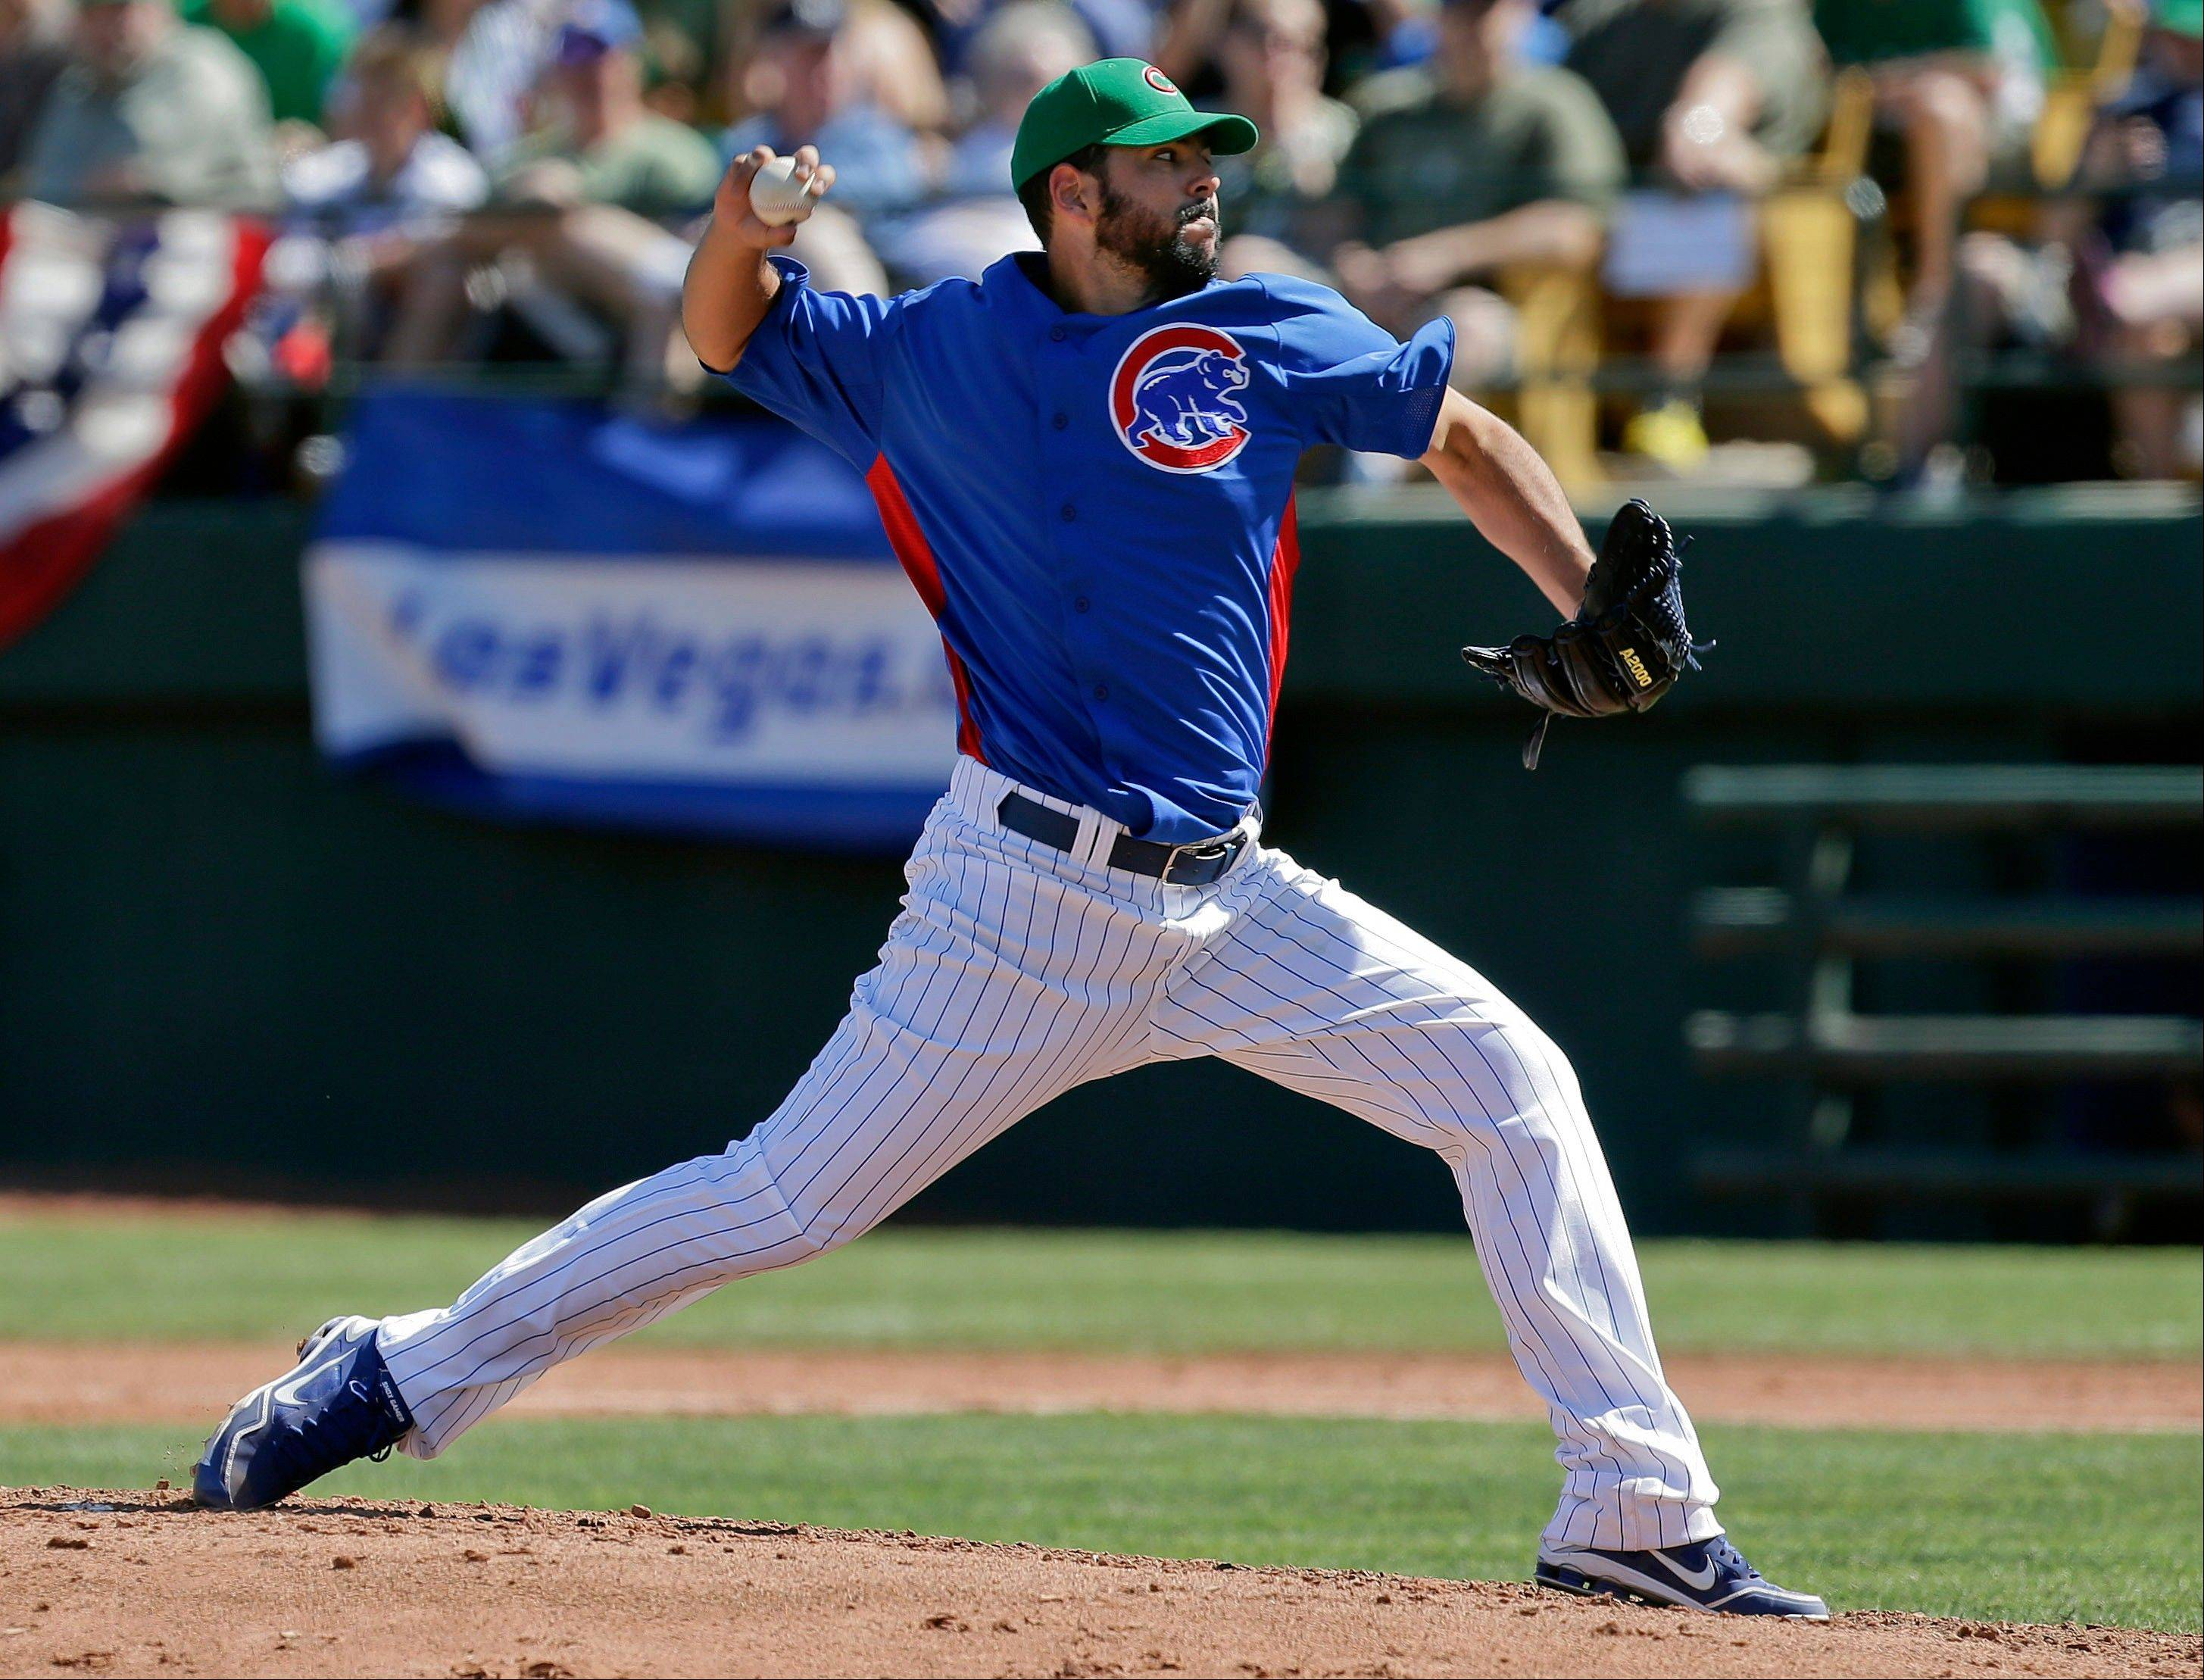 Chicago Cubs pitcher Carlos Villanueva delivers against the Texas Rangers in the fourth inning of an exhibition spring training baseball game, Sunday, March 17, 2013, in Las Vegas.